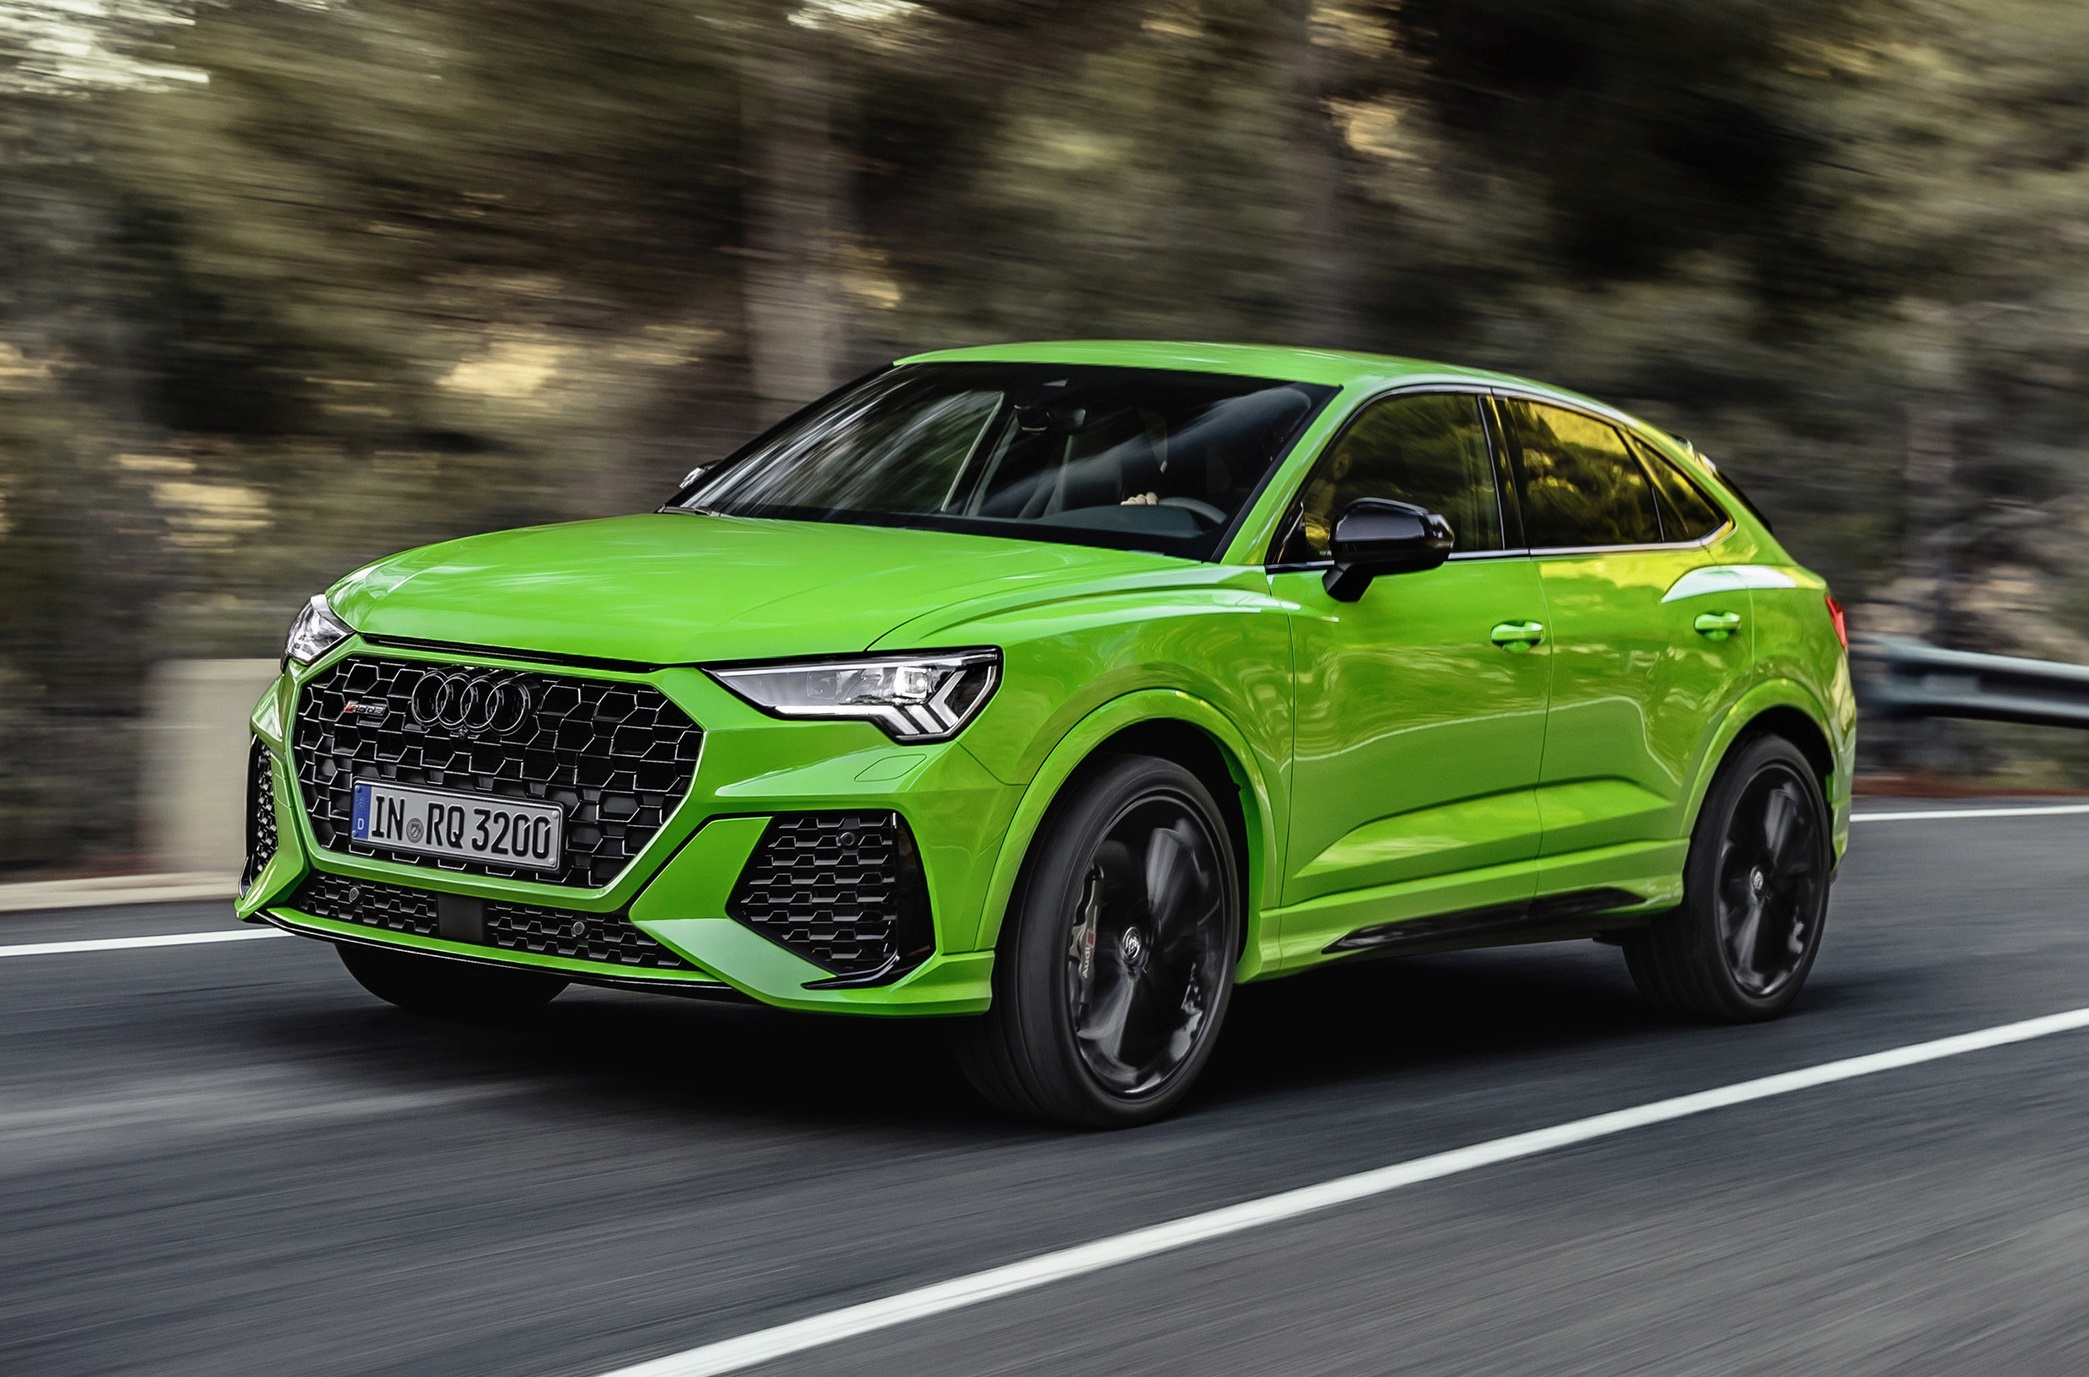 Audi RS Q3 and RS Q3 Sportback Revealed Together